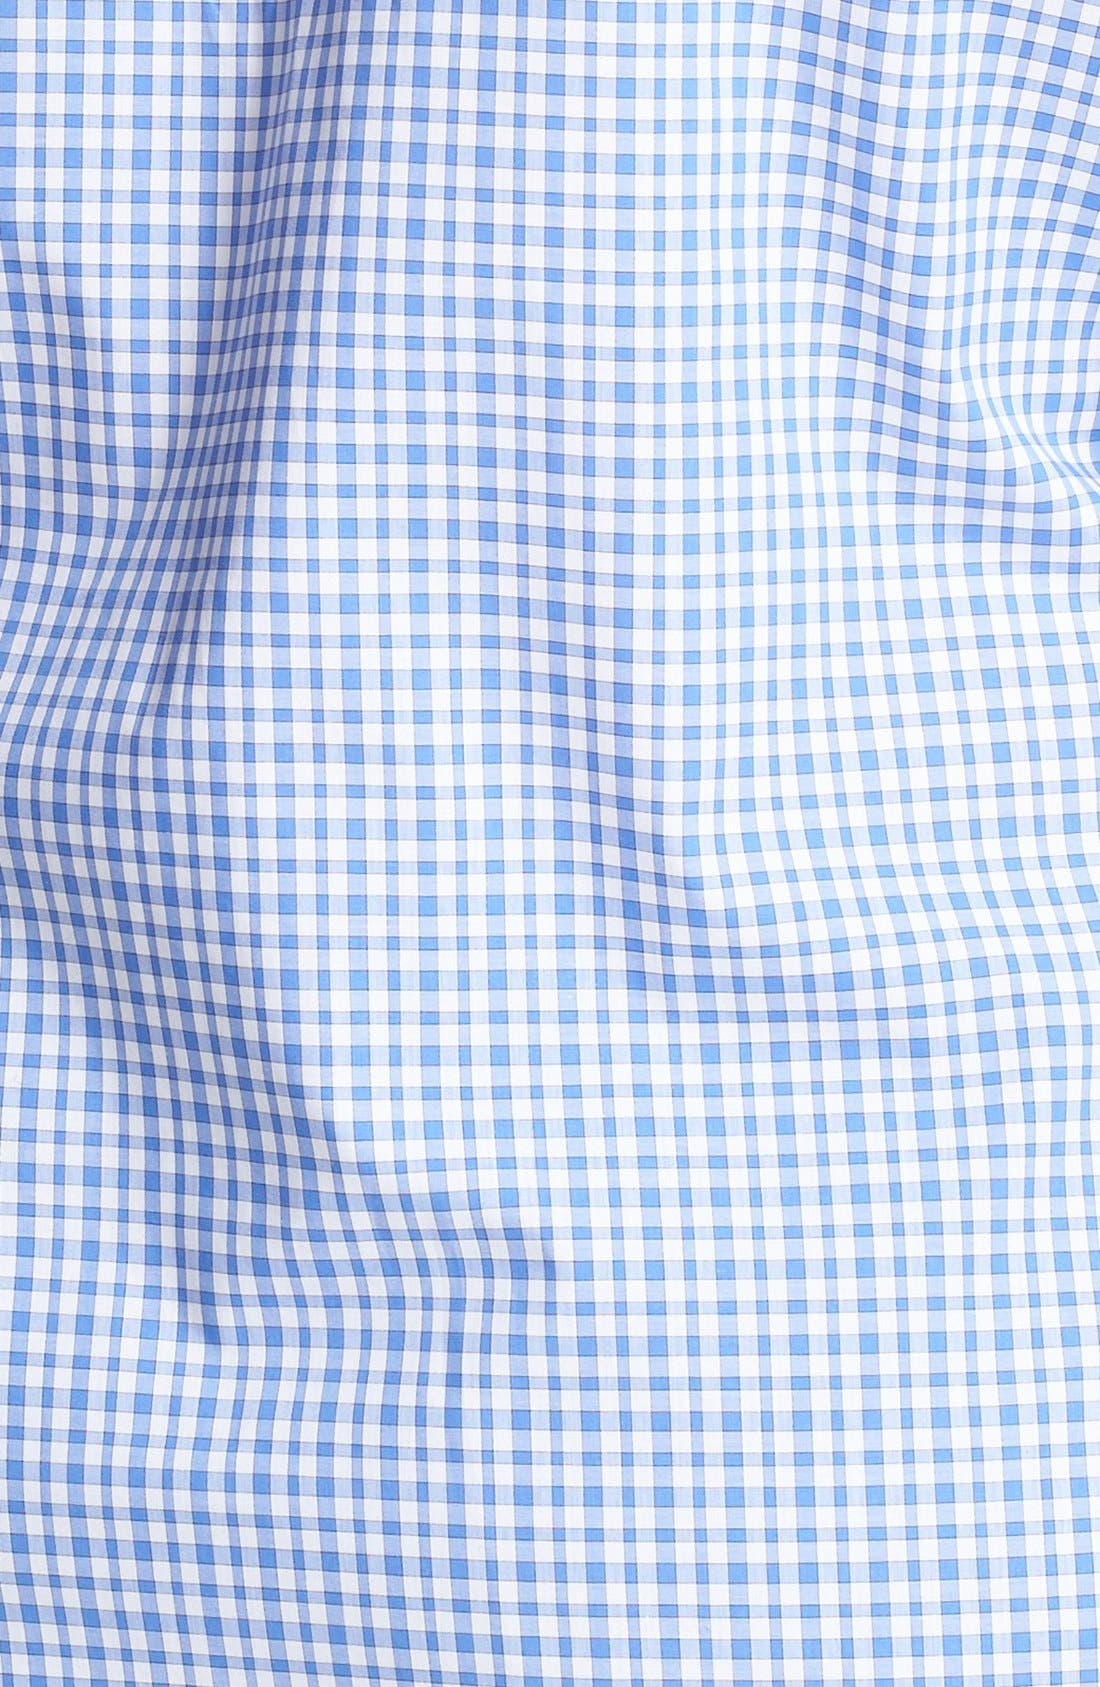 Alternate Image 3  - Foxcroft Gingham Check Shirt (Plus Size)